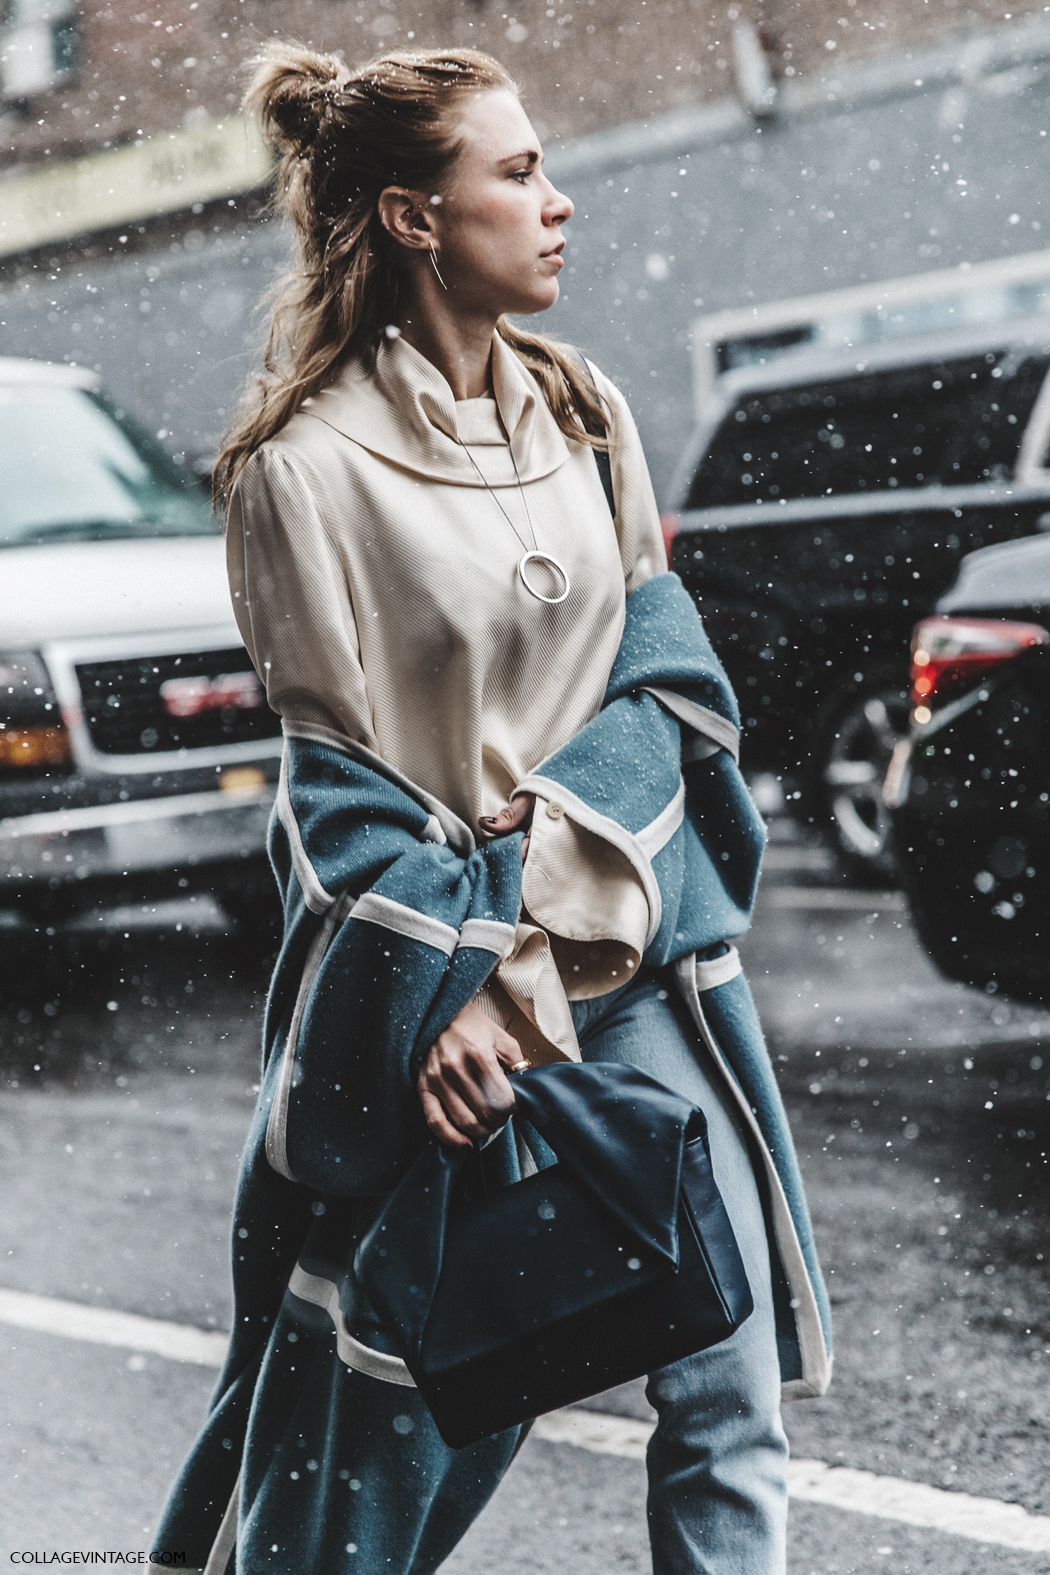 NYFW-New_York_Fashion_Week-Fall_Winter-17-Street_Style-Chloe_Cape-JW_Anderson_Bag-Celine_Shoes-Courtney_trop-